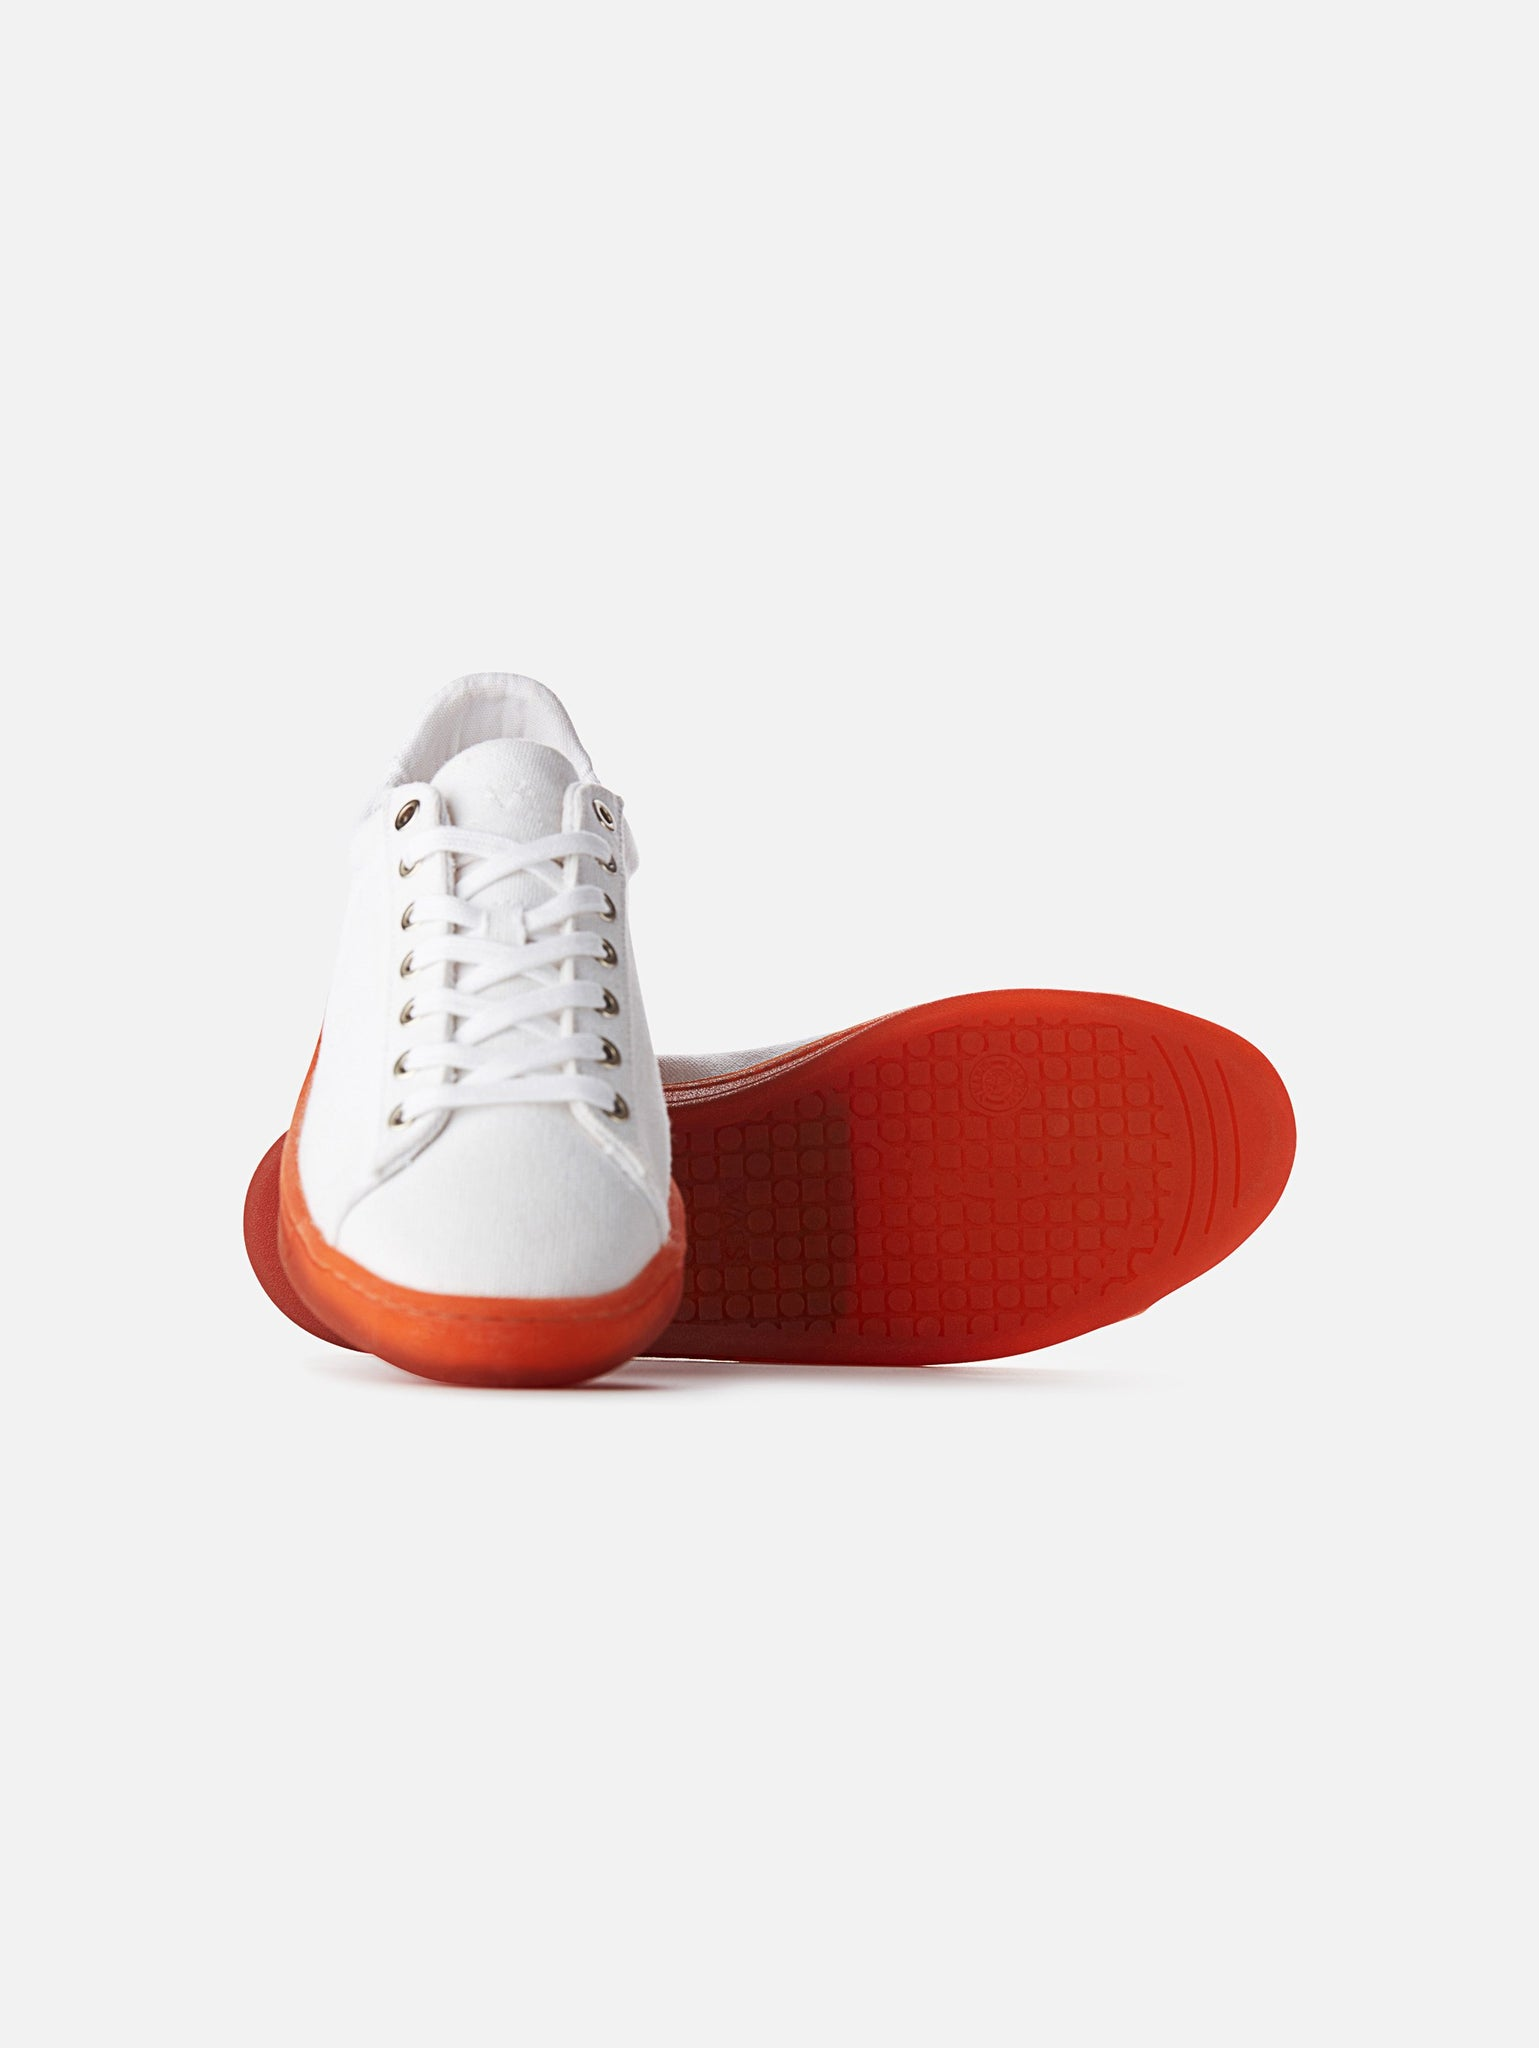 Hope - Vegan White/Red Canvas Shoeproduct_vendor#product_type